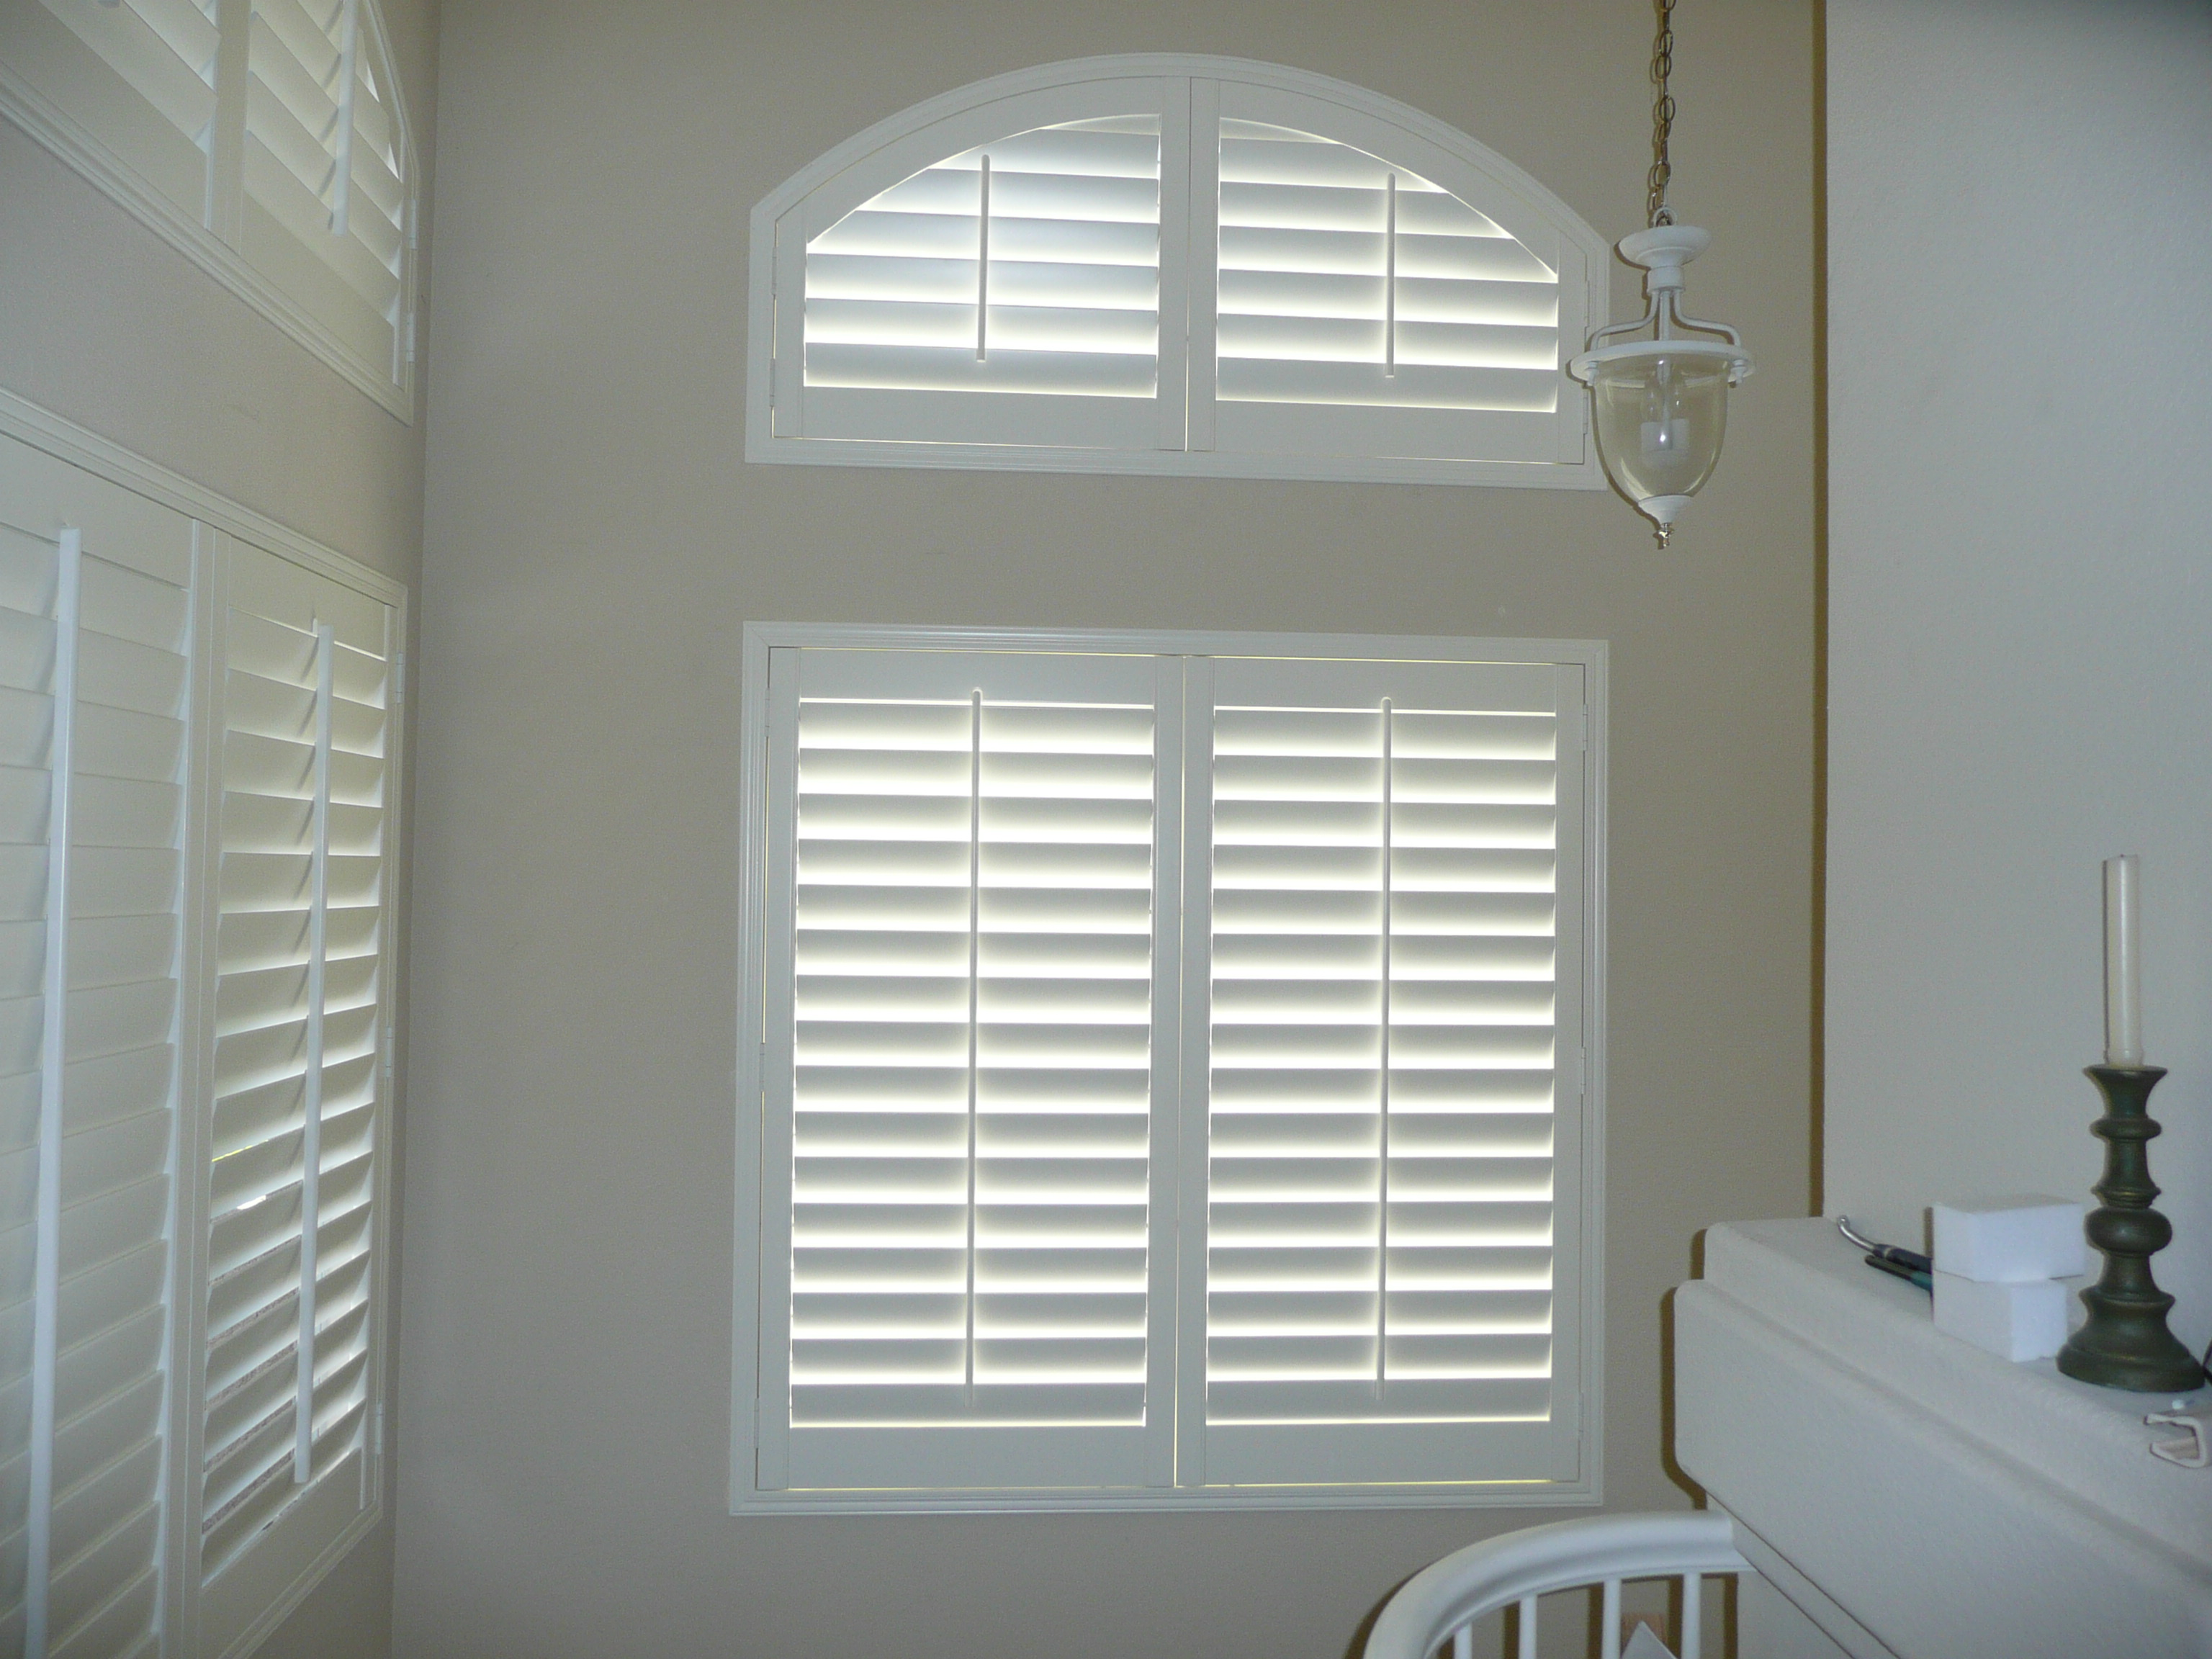 1000 images about shutter shots on pinterest for Interieur shutters